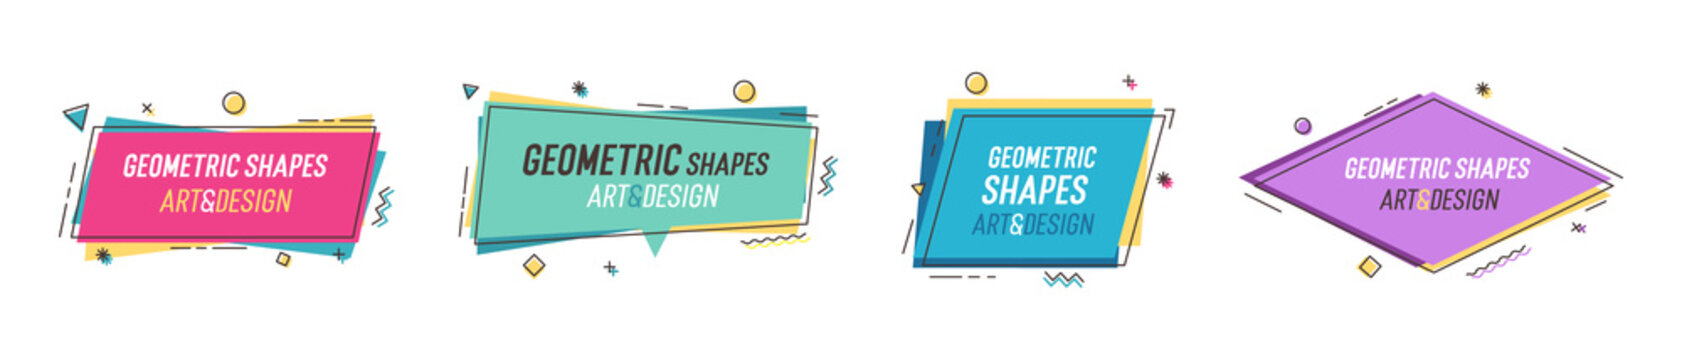 Geometric shapes with abstract elements and place for text. Vector graphic design illustrations for advertising, sales, marketing, design and art projects, posters,